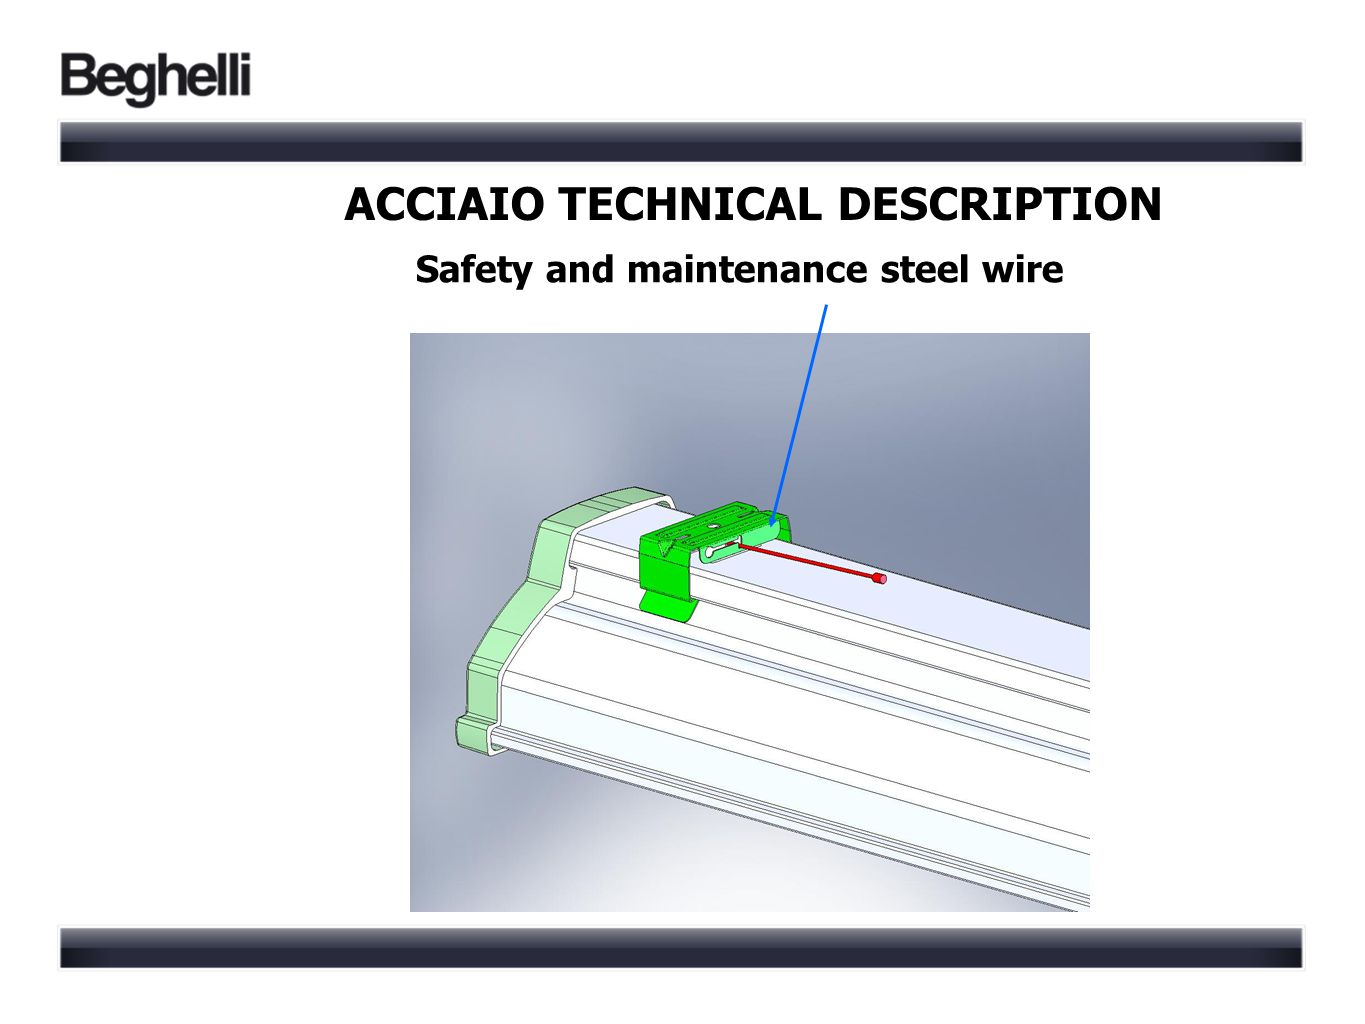 Beghelli Emergency Light Wiring Diagram Led Acciaio Ppt Video Online Download